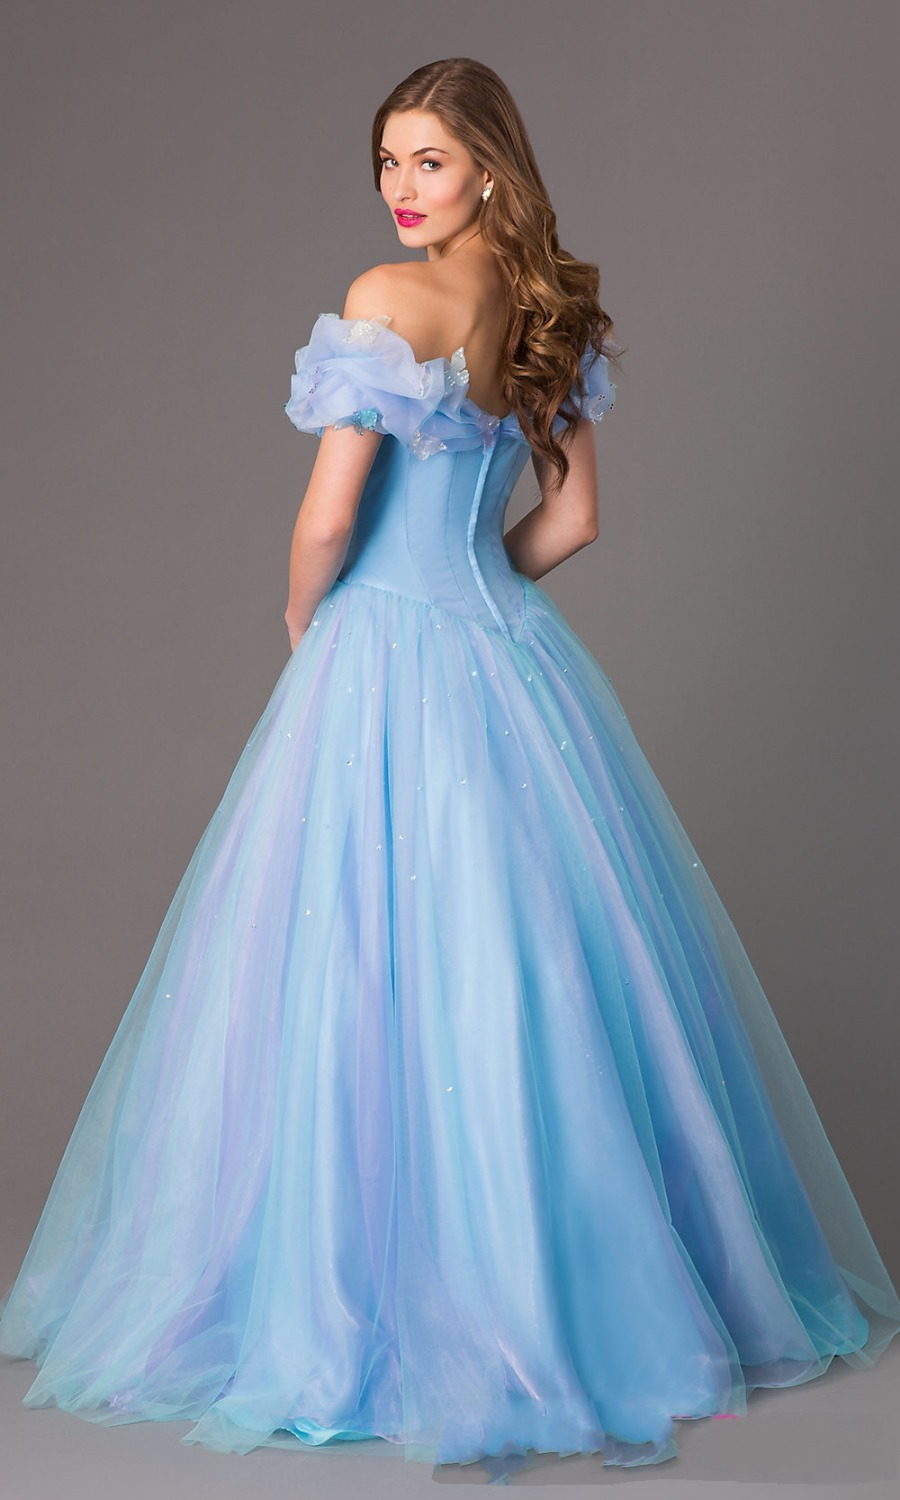 Magnificent 00 Prom Dresses Pictures - All Wedding Dresses ...